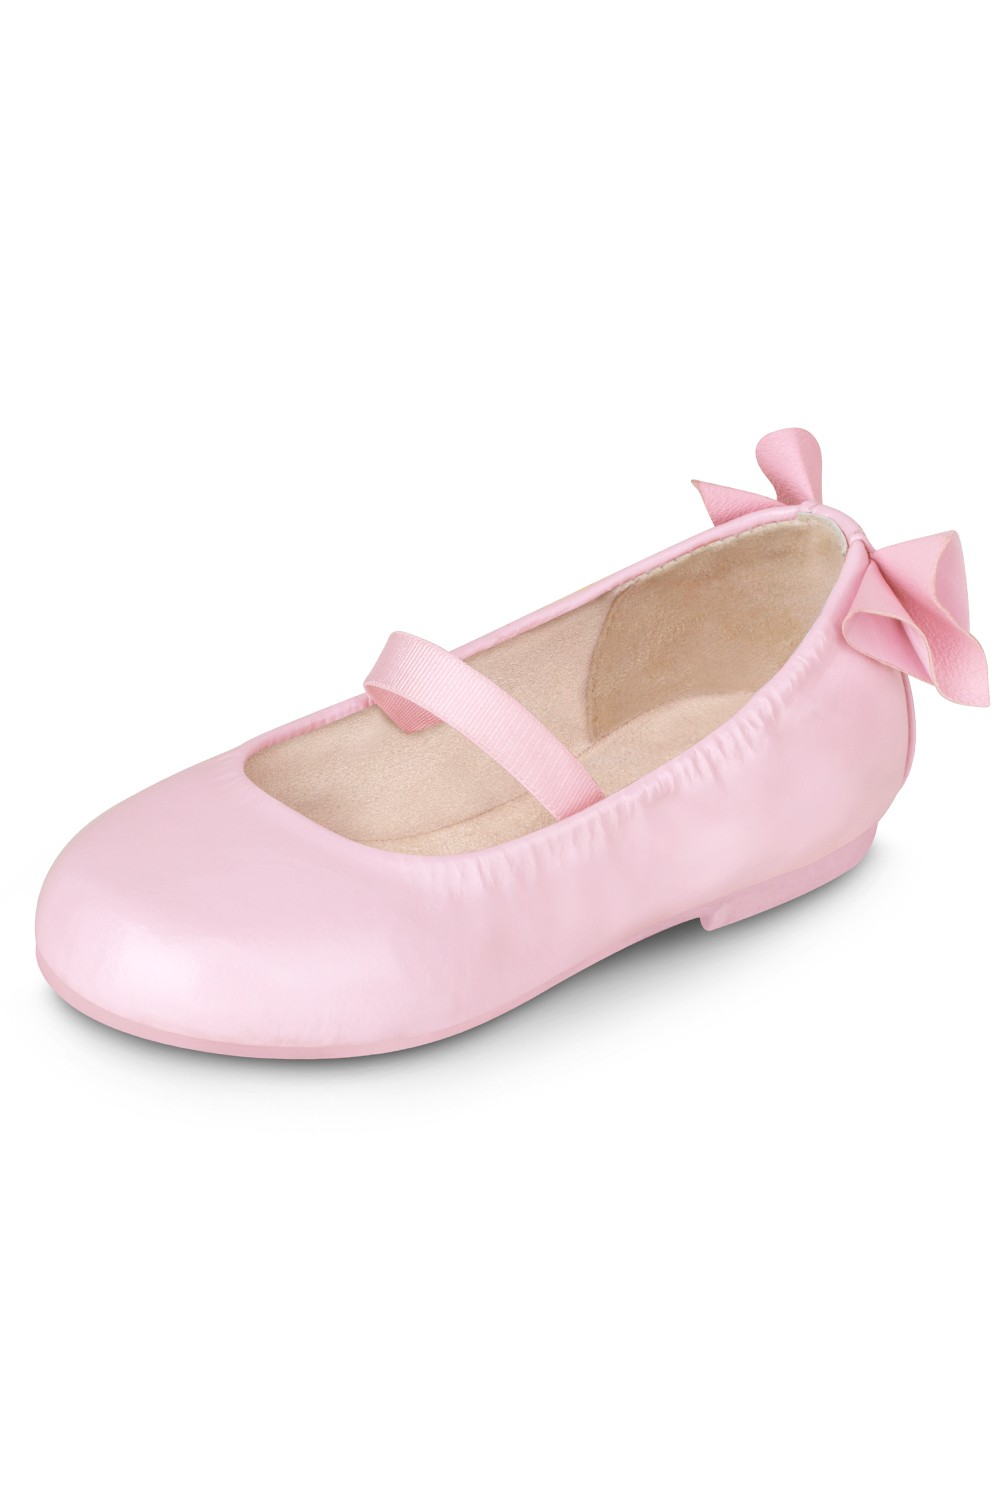 Toddlers Fashion Shoes